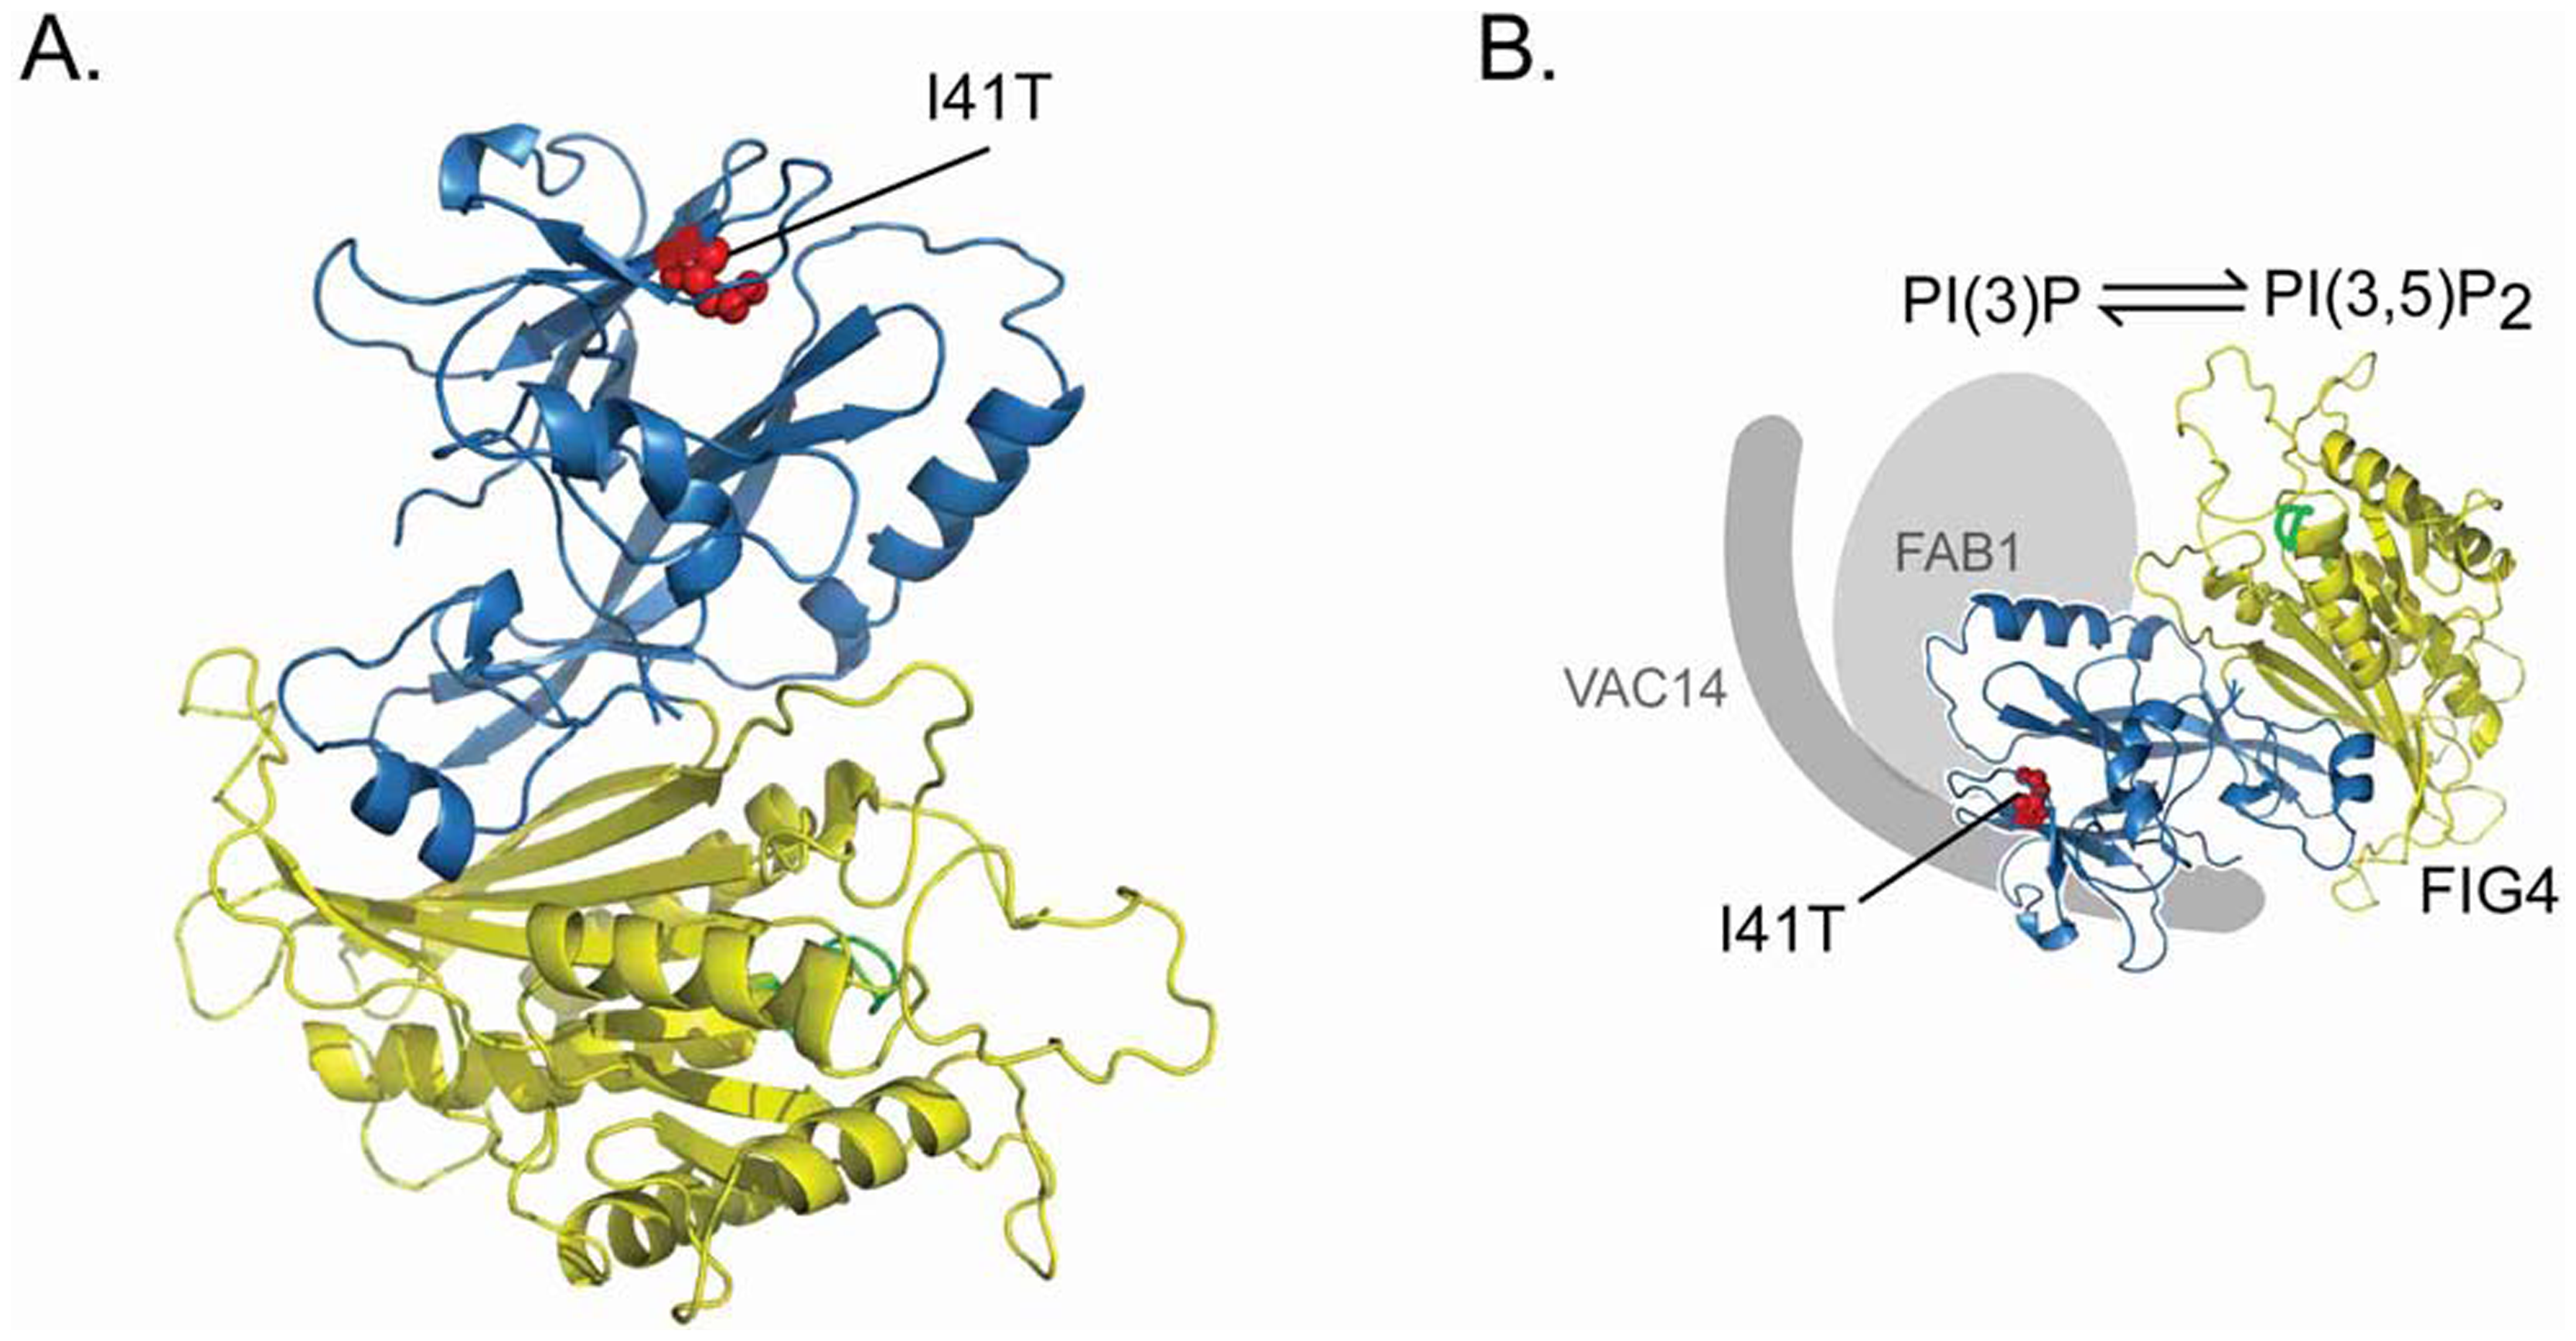 Location of the <i>FIG4</i>-I41T mutation and effect on protein interaction.